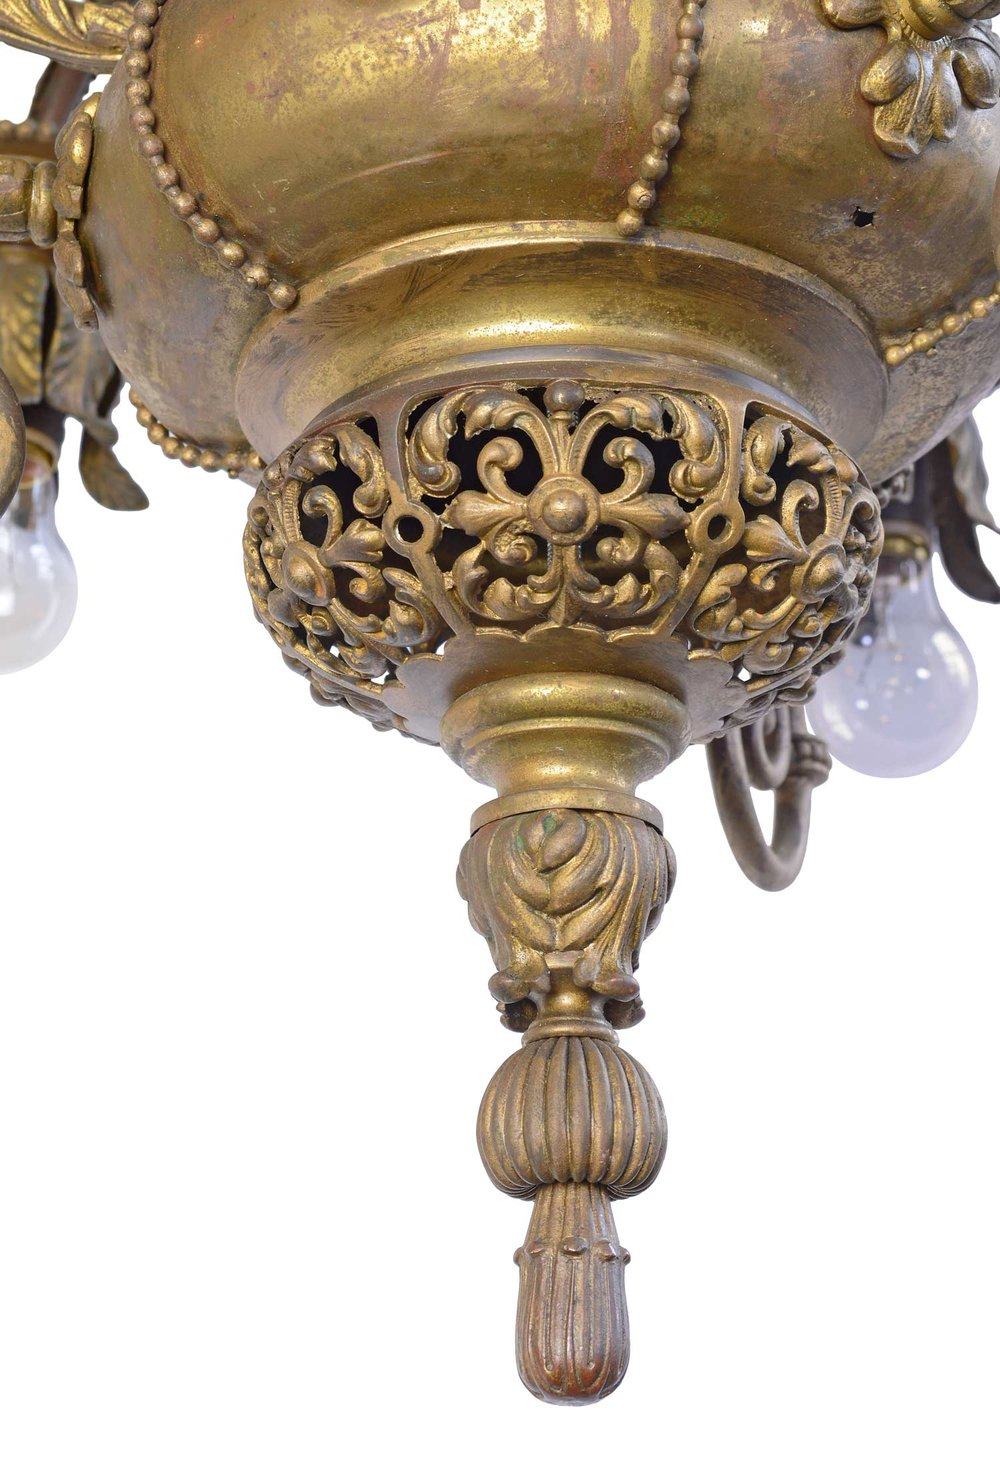 45770-silver-plate-chandelier-with-filigree-bottom-detail.jpg